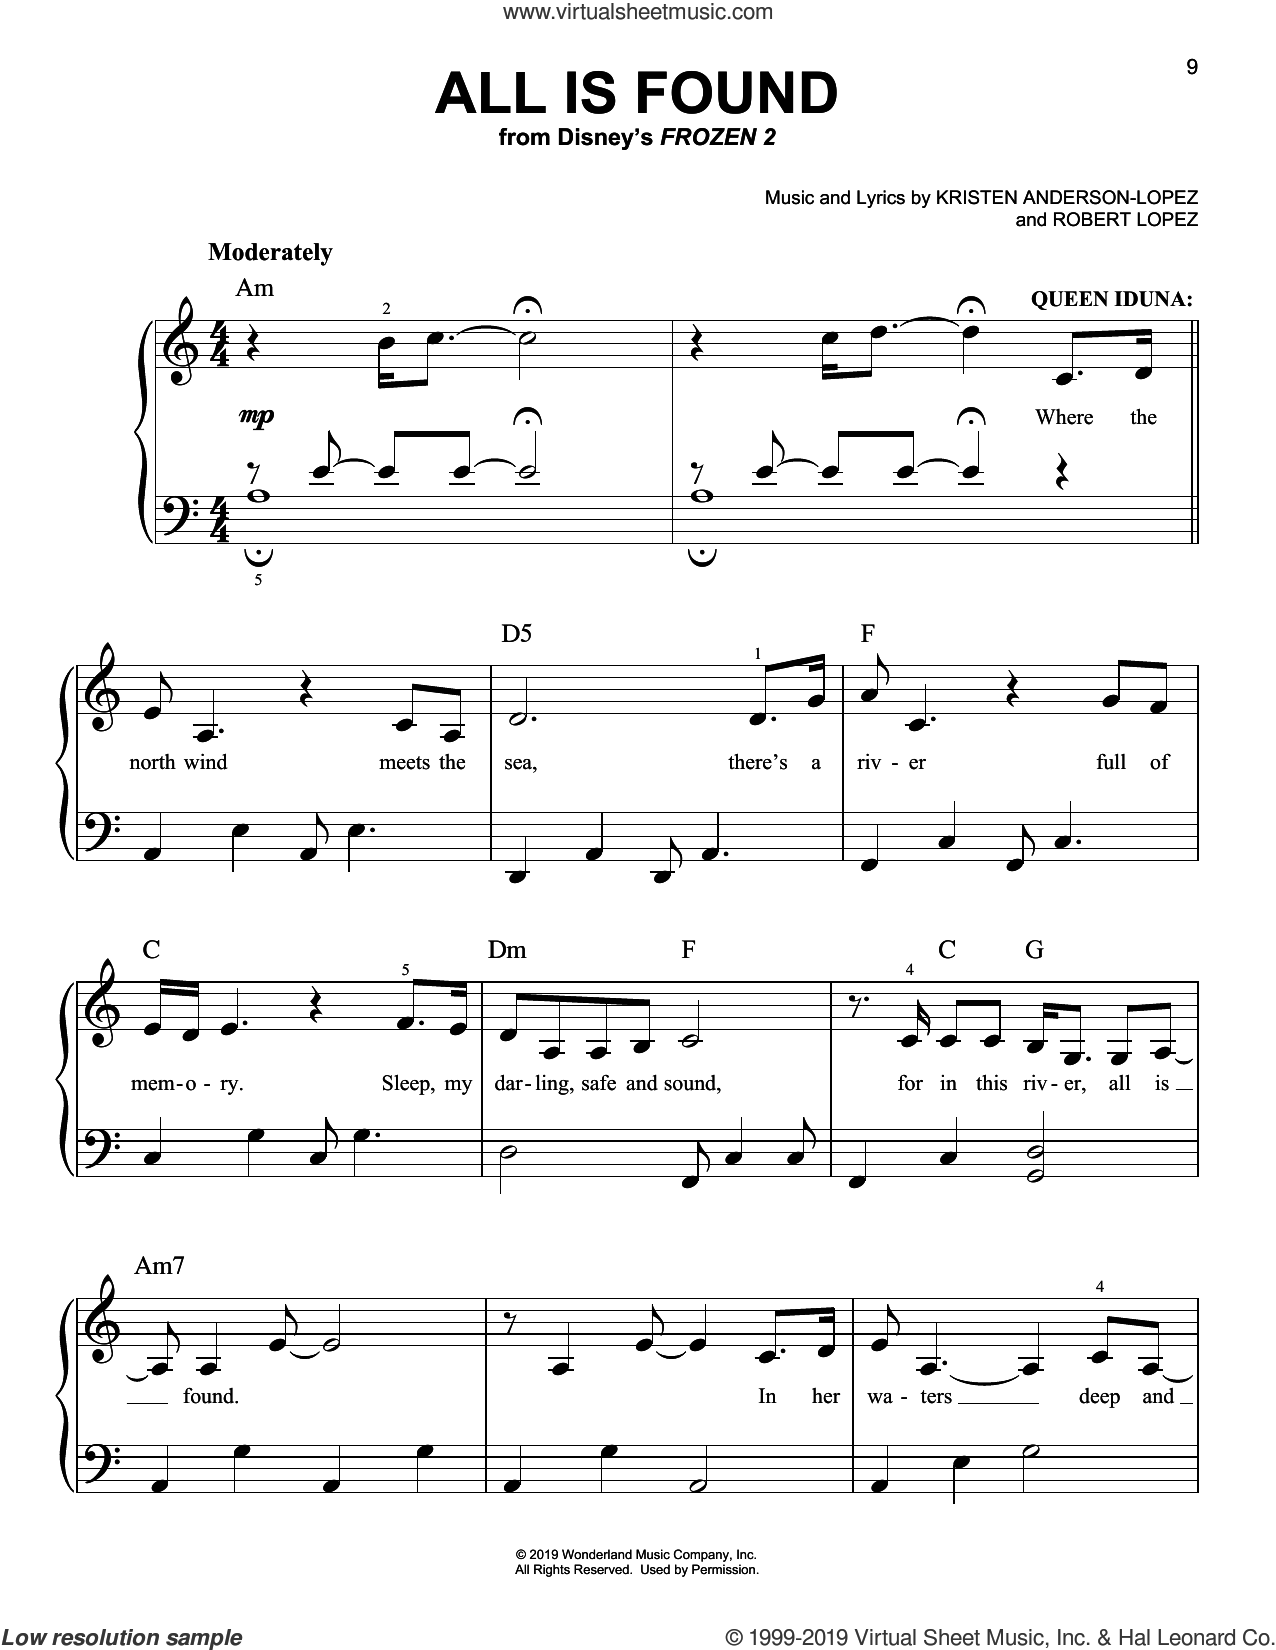 All Is Found (from Disney's Frozen 2) sheet music for piano solo by Evan Rachel Wood, Kristen Anderson-Lopez and Robert Lopez, easy skill level